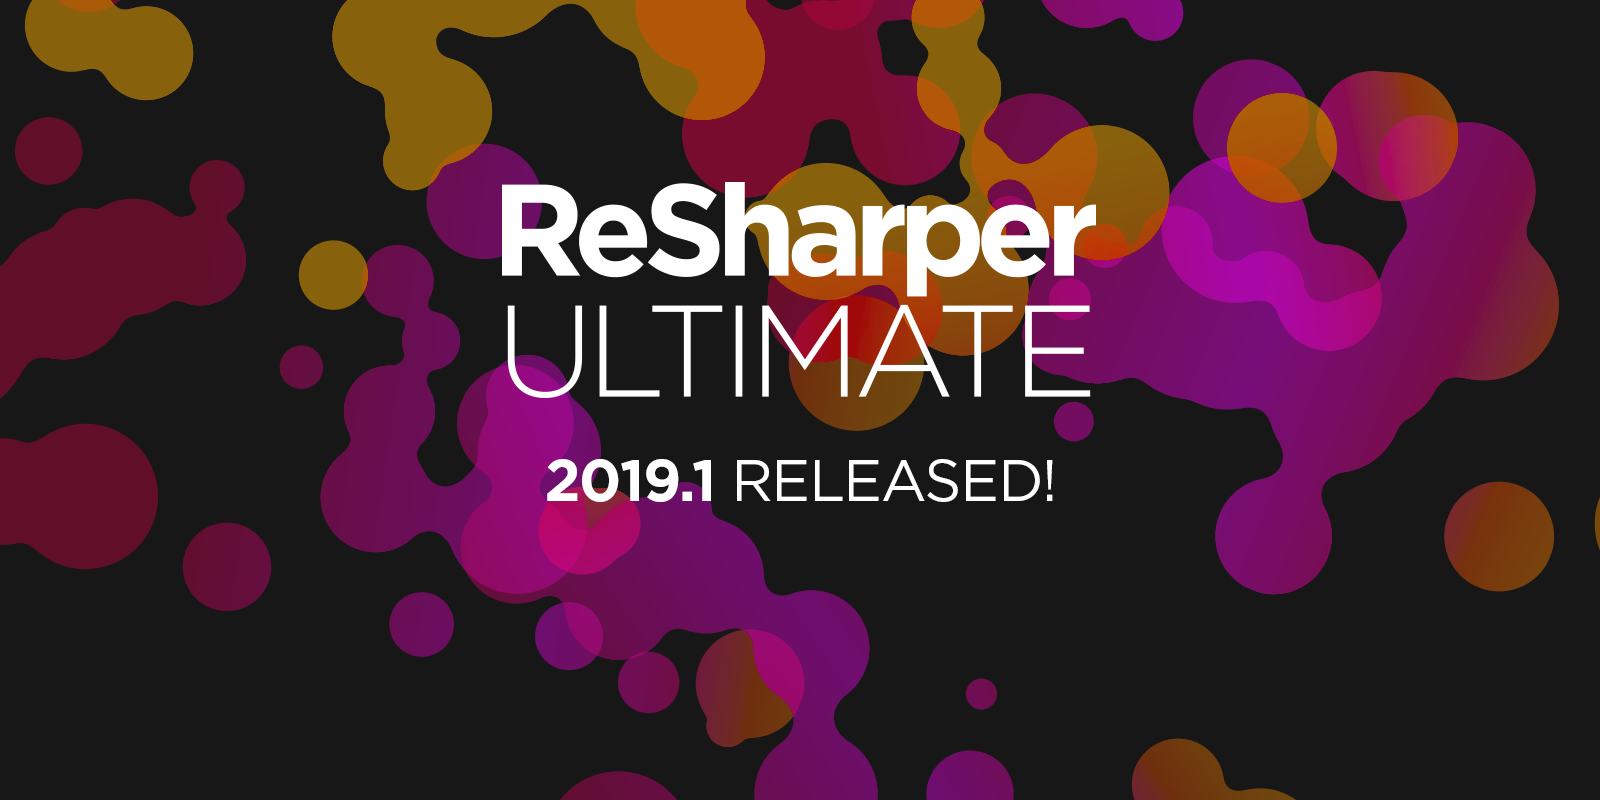 ReSharper Ultimate 2019.1 is Released